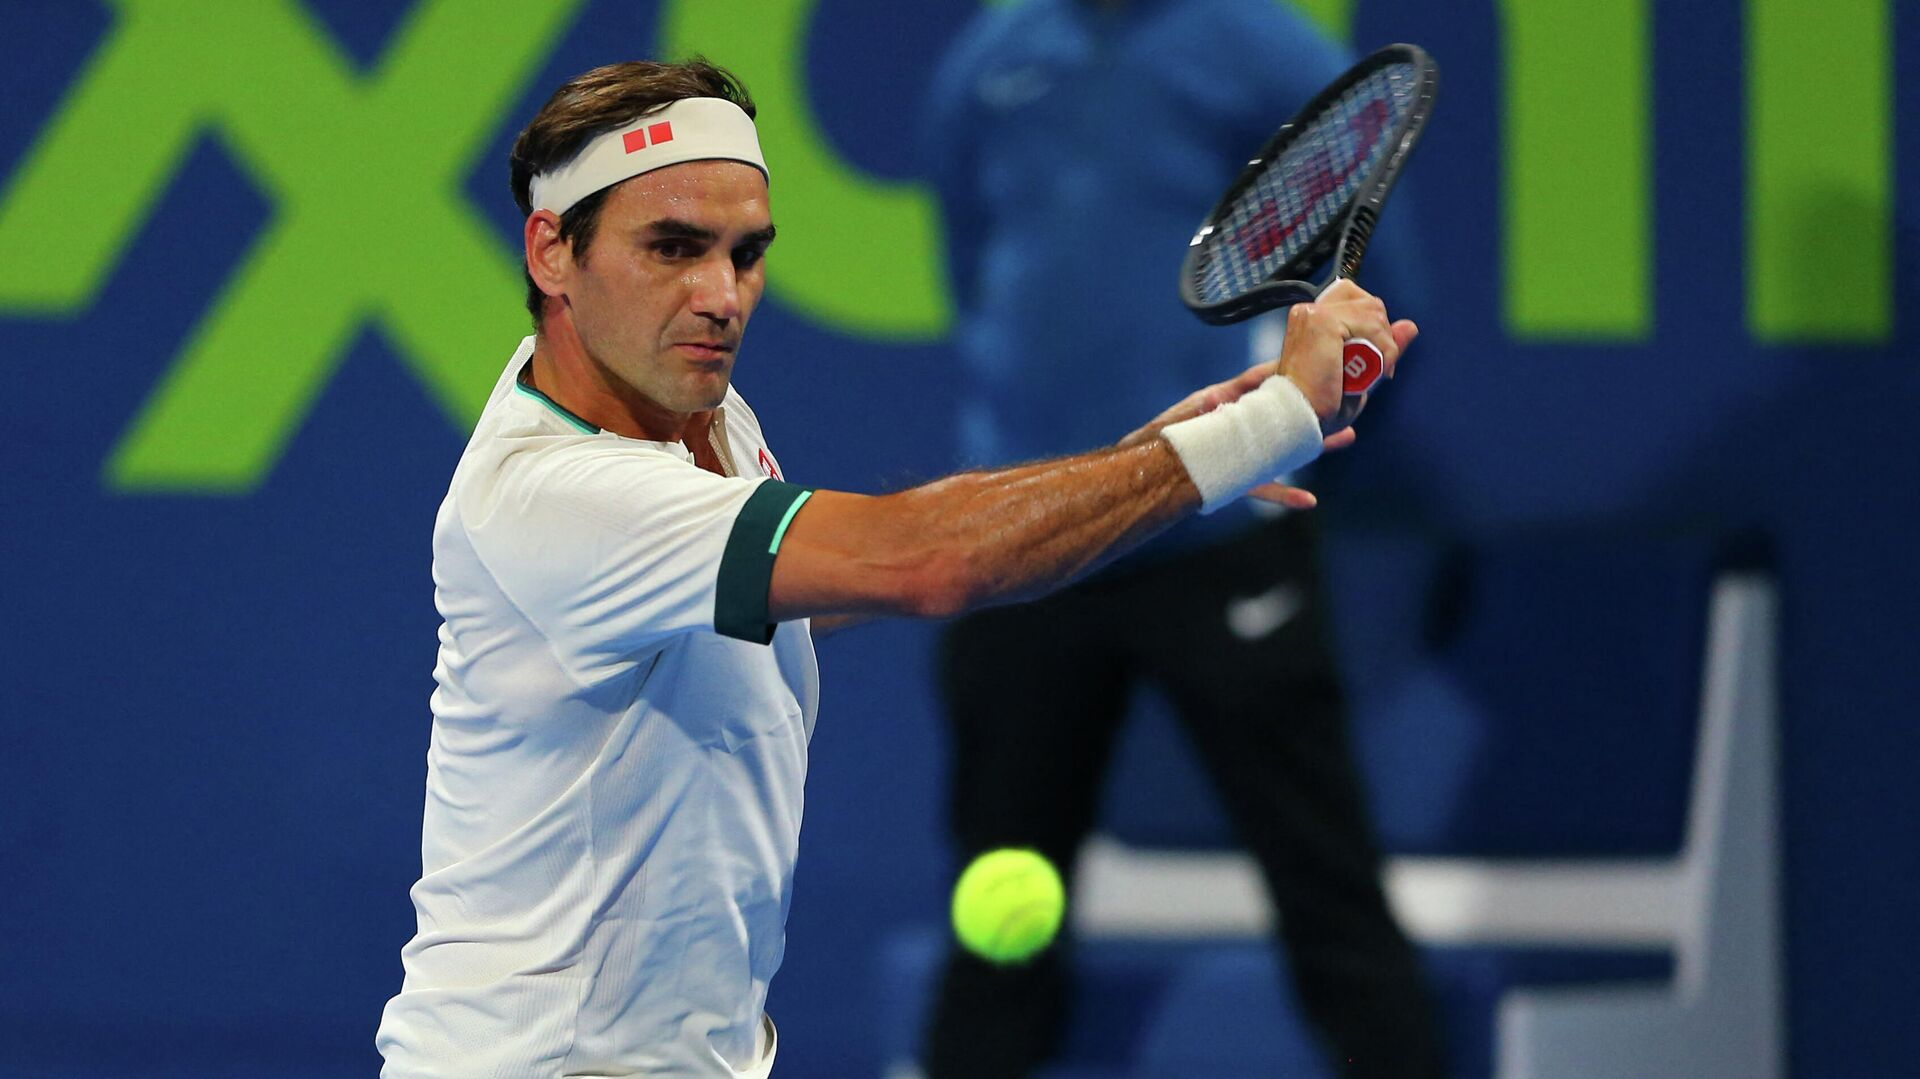 A handout picture obtained from the Qatar Tennis Federation on March 11, 2021, shows Roger Federer returns the ball during his match with Nikoloz Basilashvili of Georgia at the Qatar ExxonMobil Open at the Khalifa International Tennis and Squash Complex in the Qatari capital Doha. - Federer squandered a match point and was knocked out of the Qatar Open by Basilashvili in just his second match since a 13-month injury absence. (Photo by Samer Al-Rejjal / Qatar Tennis Federation / AFP) / RESTRICTED TO EDITORIAL USE - MANDATORY CREDIT AFP PHOTO / QATAR TENNIS FEDERATION  - NO MARKETING - NO ADVERTISING CAMPAIGNS - DISTRIBUTED AS A SERVICE TO CLIENTS - РИА Новости, 1920, 15.05.2021